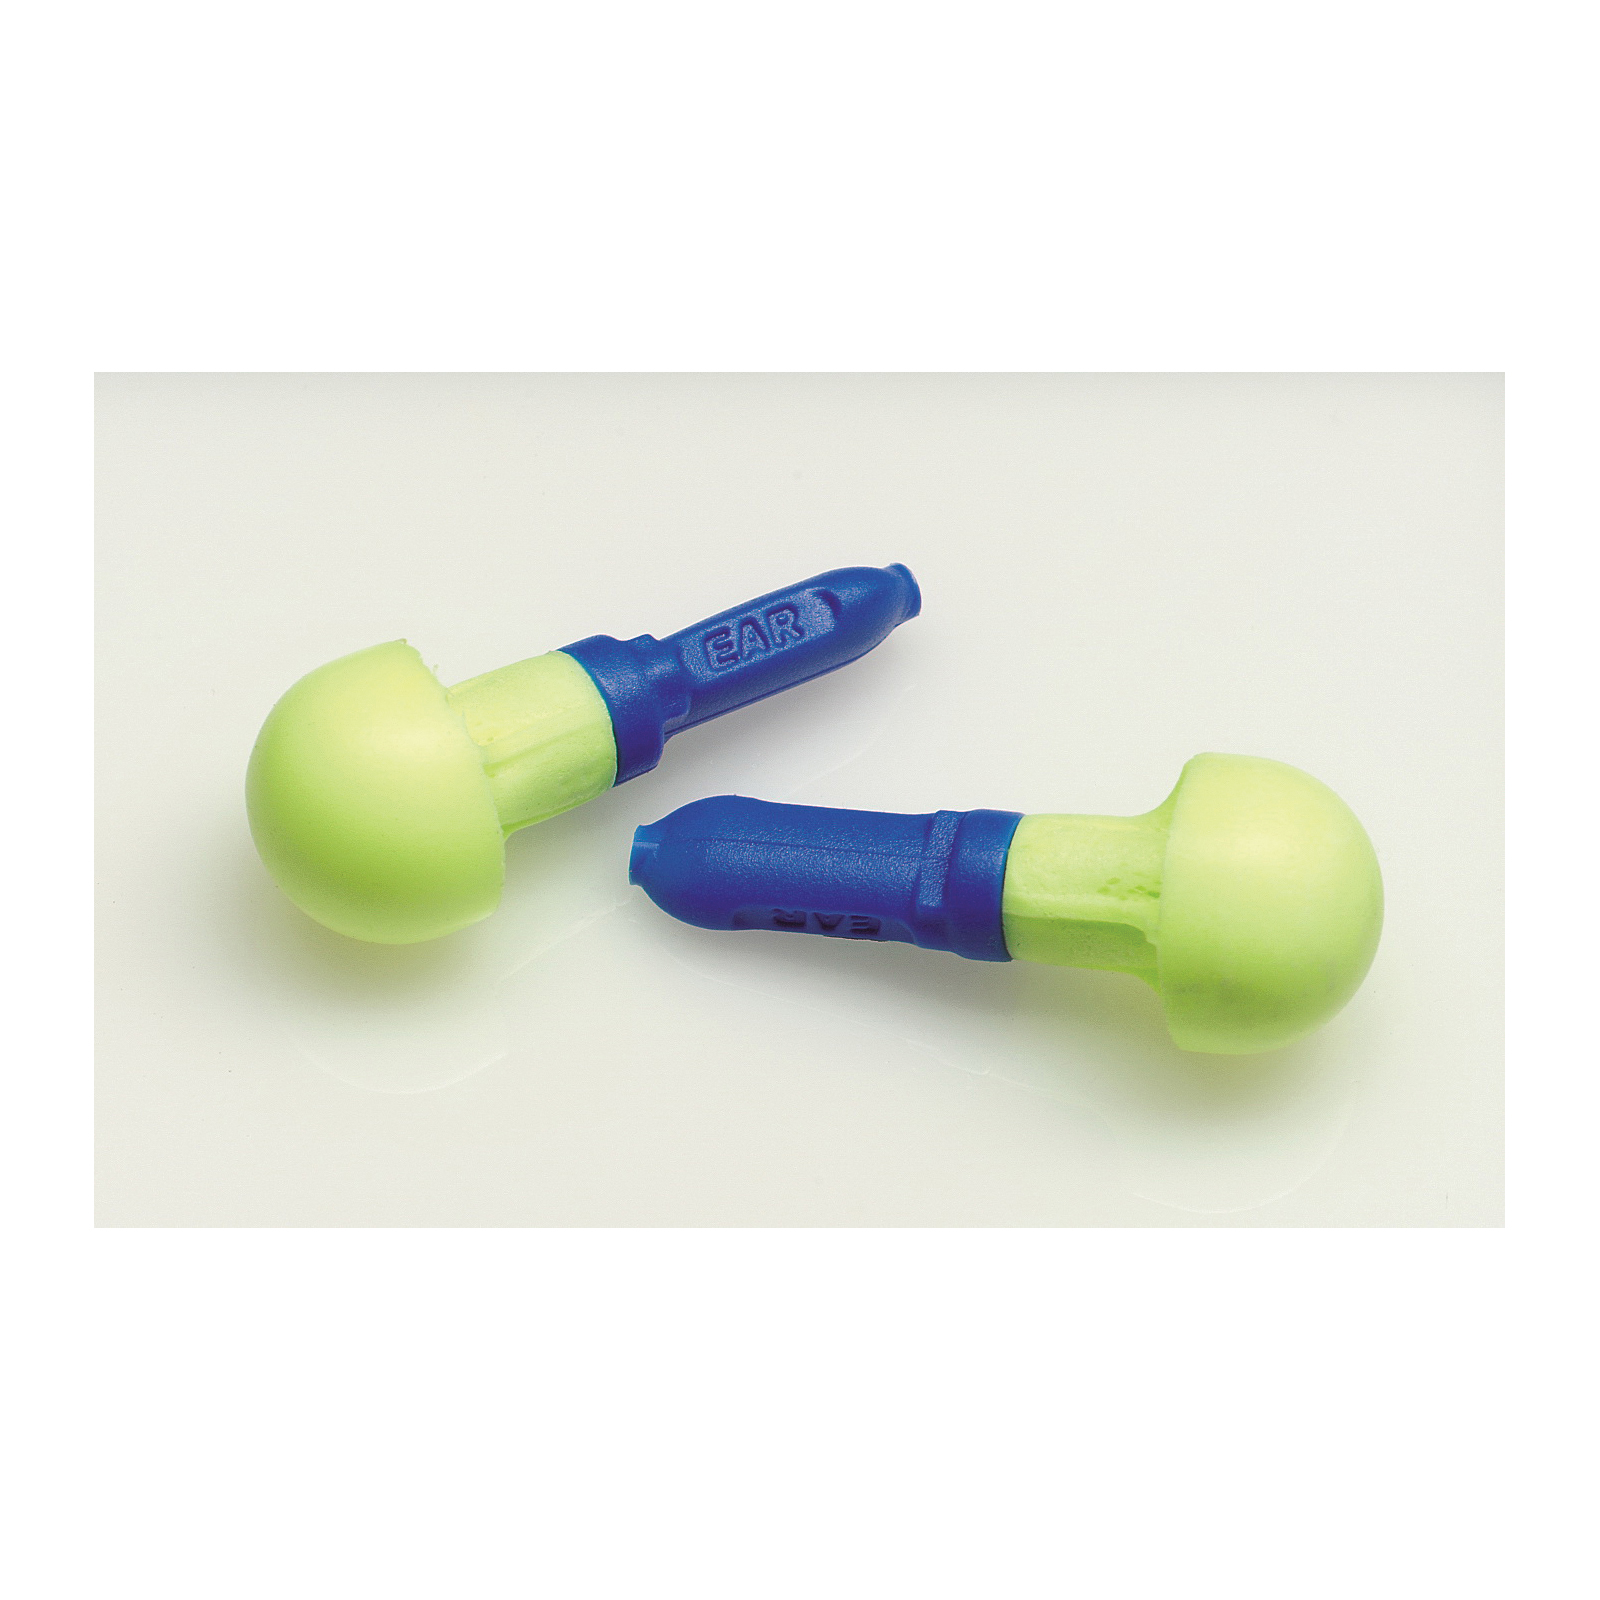 E-A-R™ 080529-18002 Push-Ins™ Earplugs, 28 dB Noise Reduction, Push-to-Fit Shape, CSA Class AL, Reusable, Uncorded Design